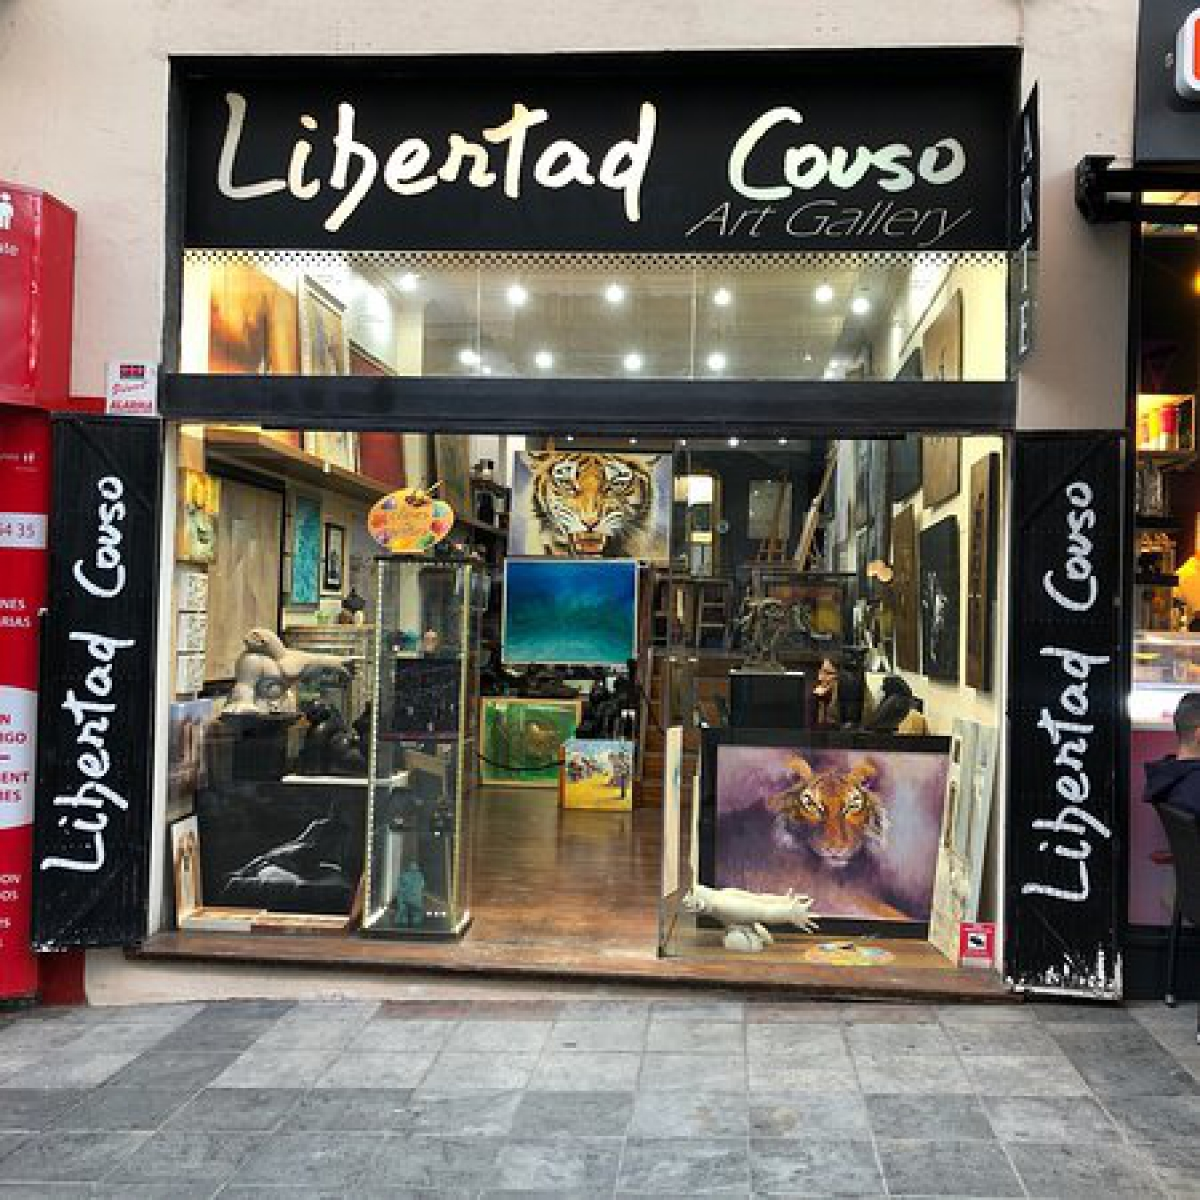 Libertad Couso Art Gallery